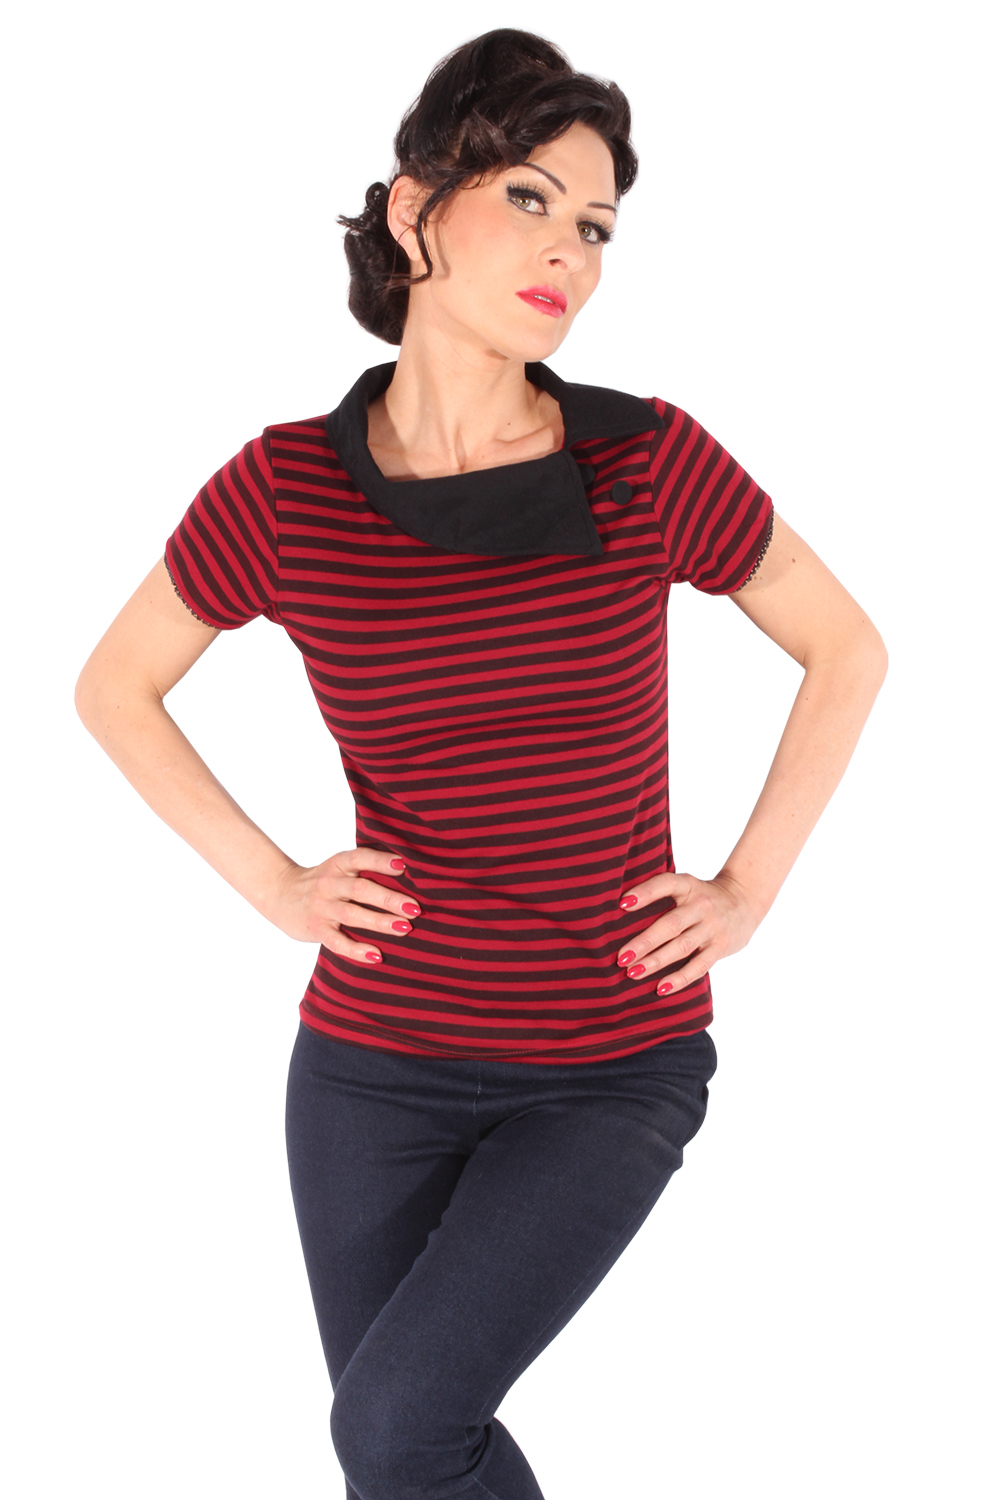 Striped Rockabilly retro Kragen punk rock Streifen T-Shirt weinrot